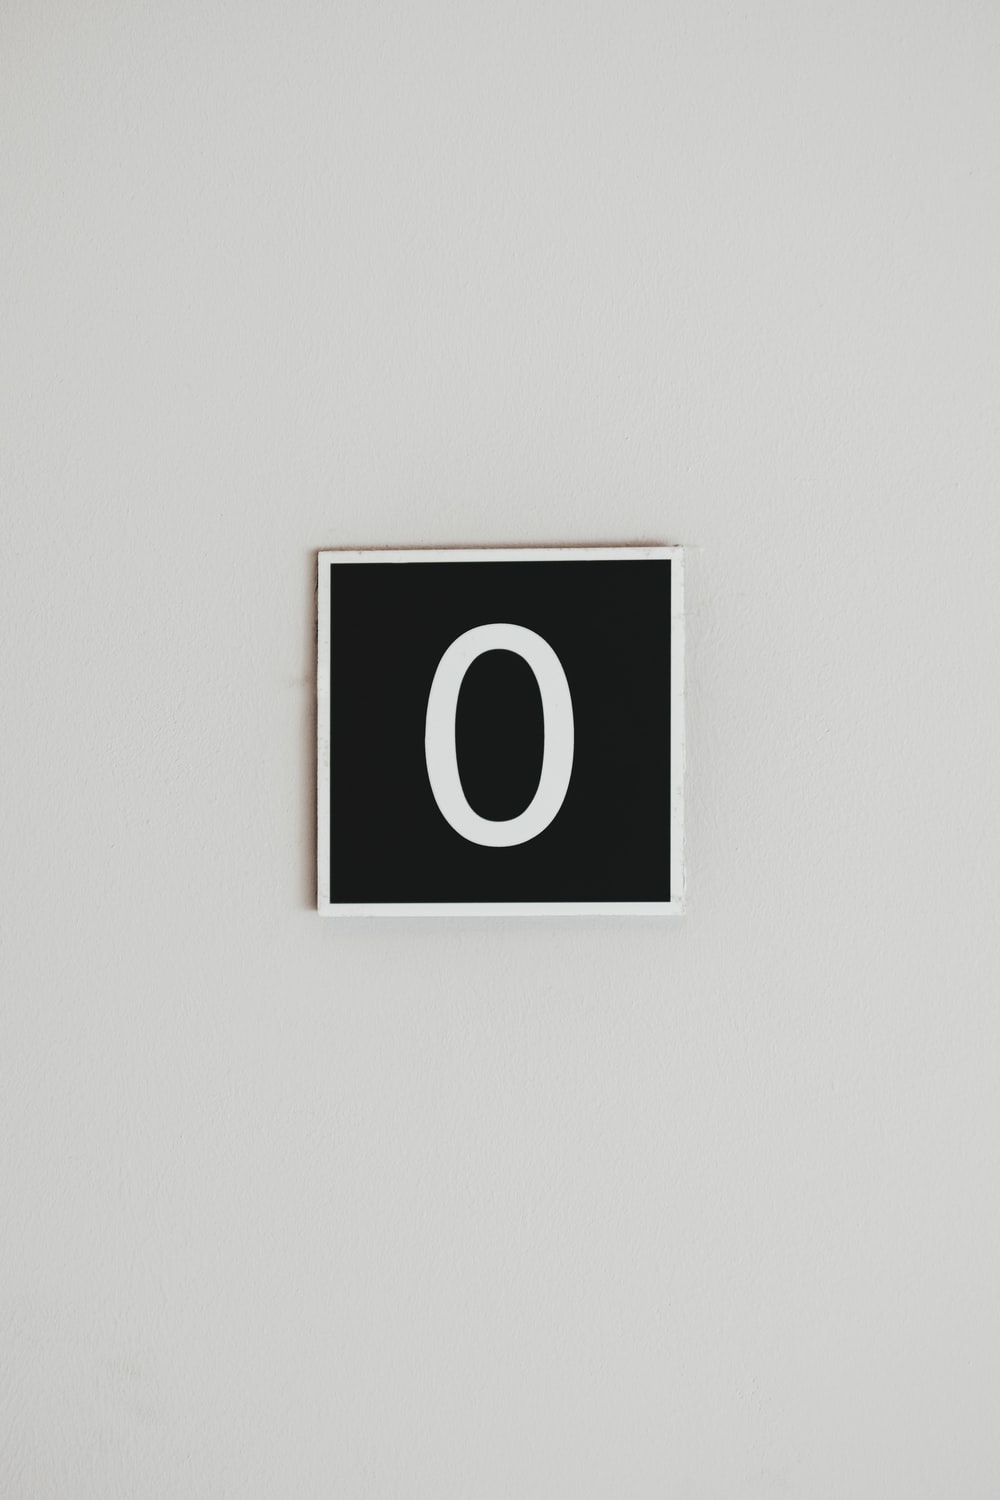 number Zero wall signage